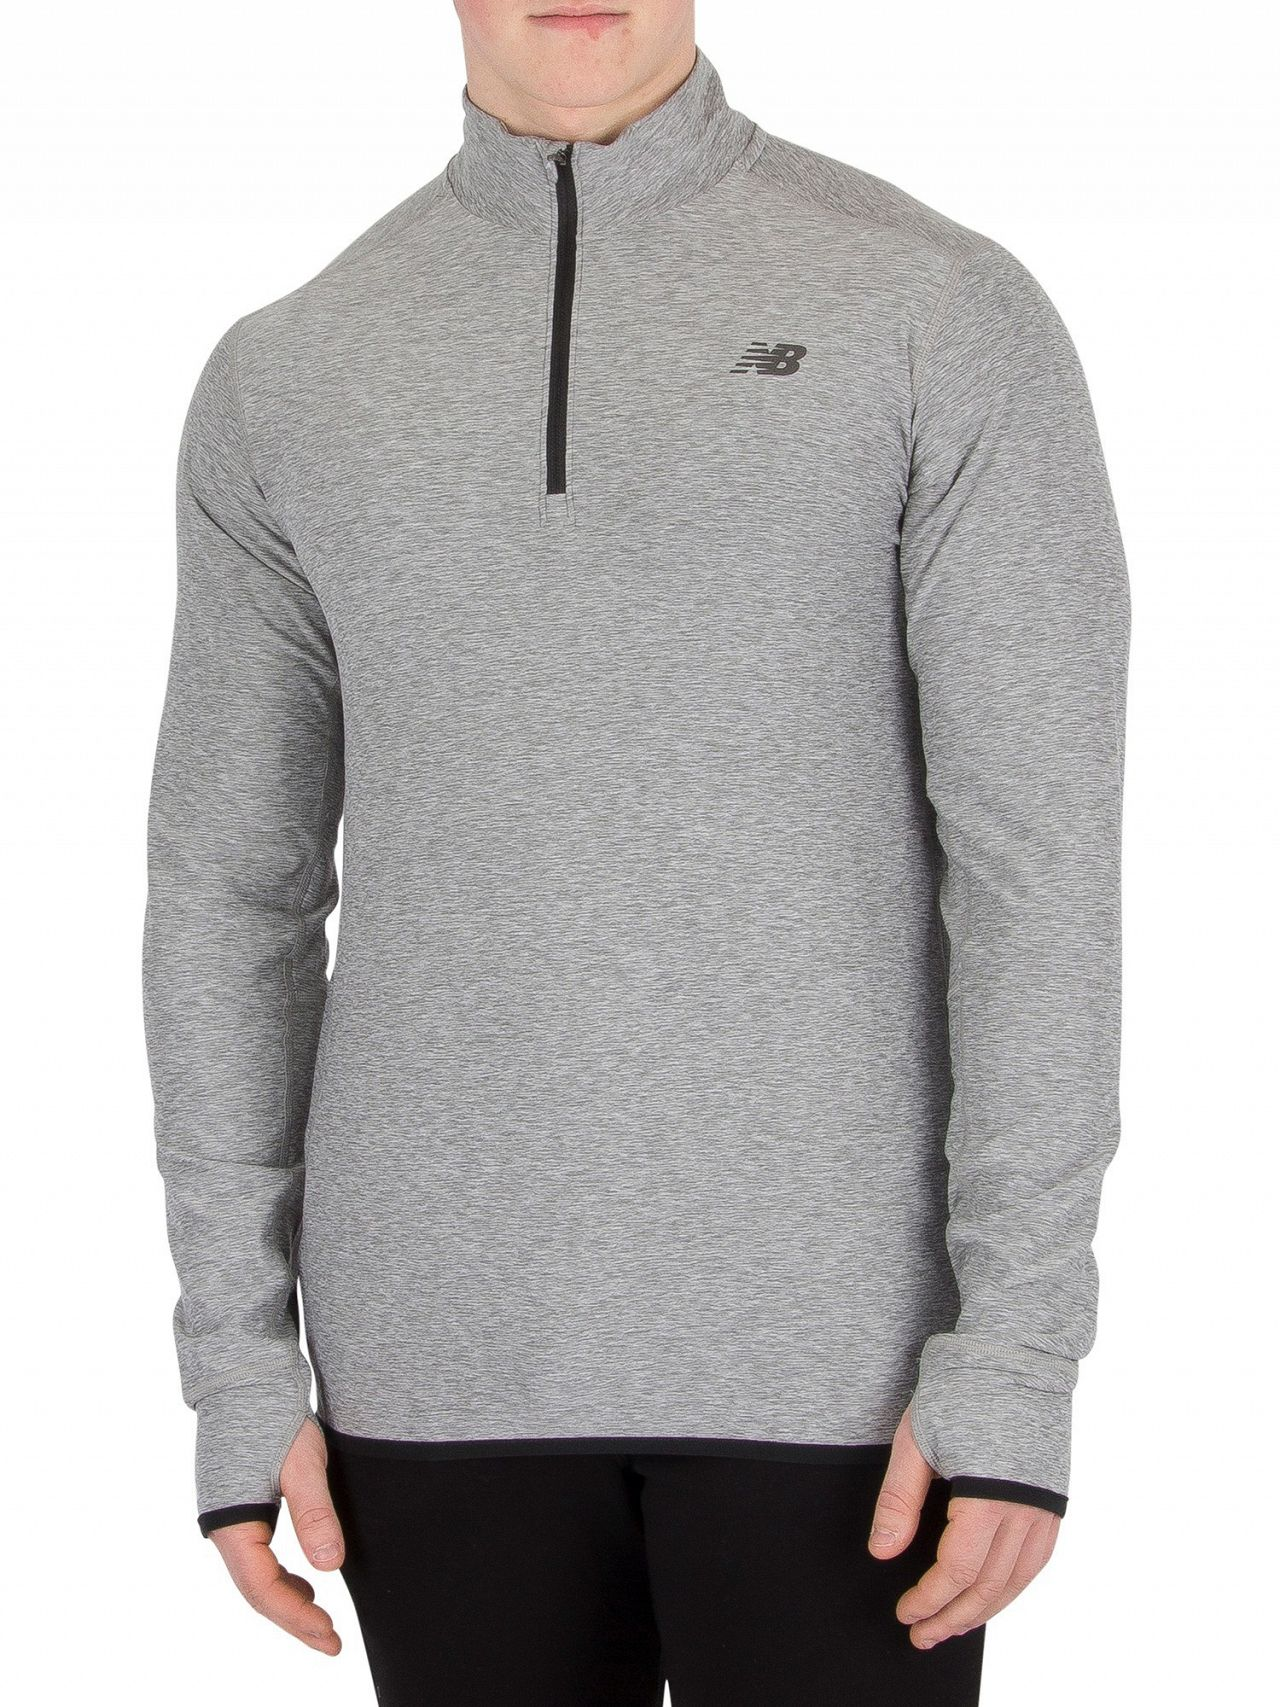 e24ce3f883512 New Balance Grey Transit Quarter Zip Top. Hover to zoom